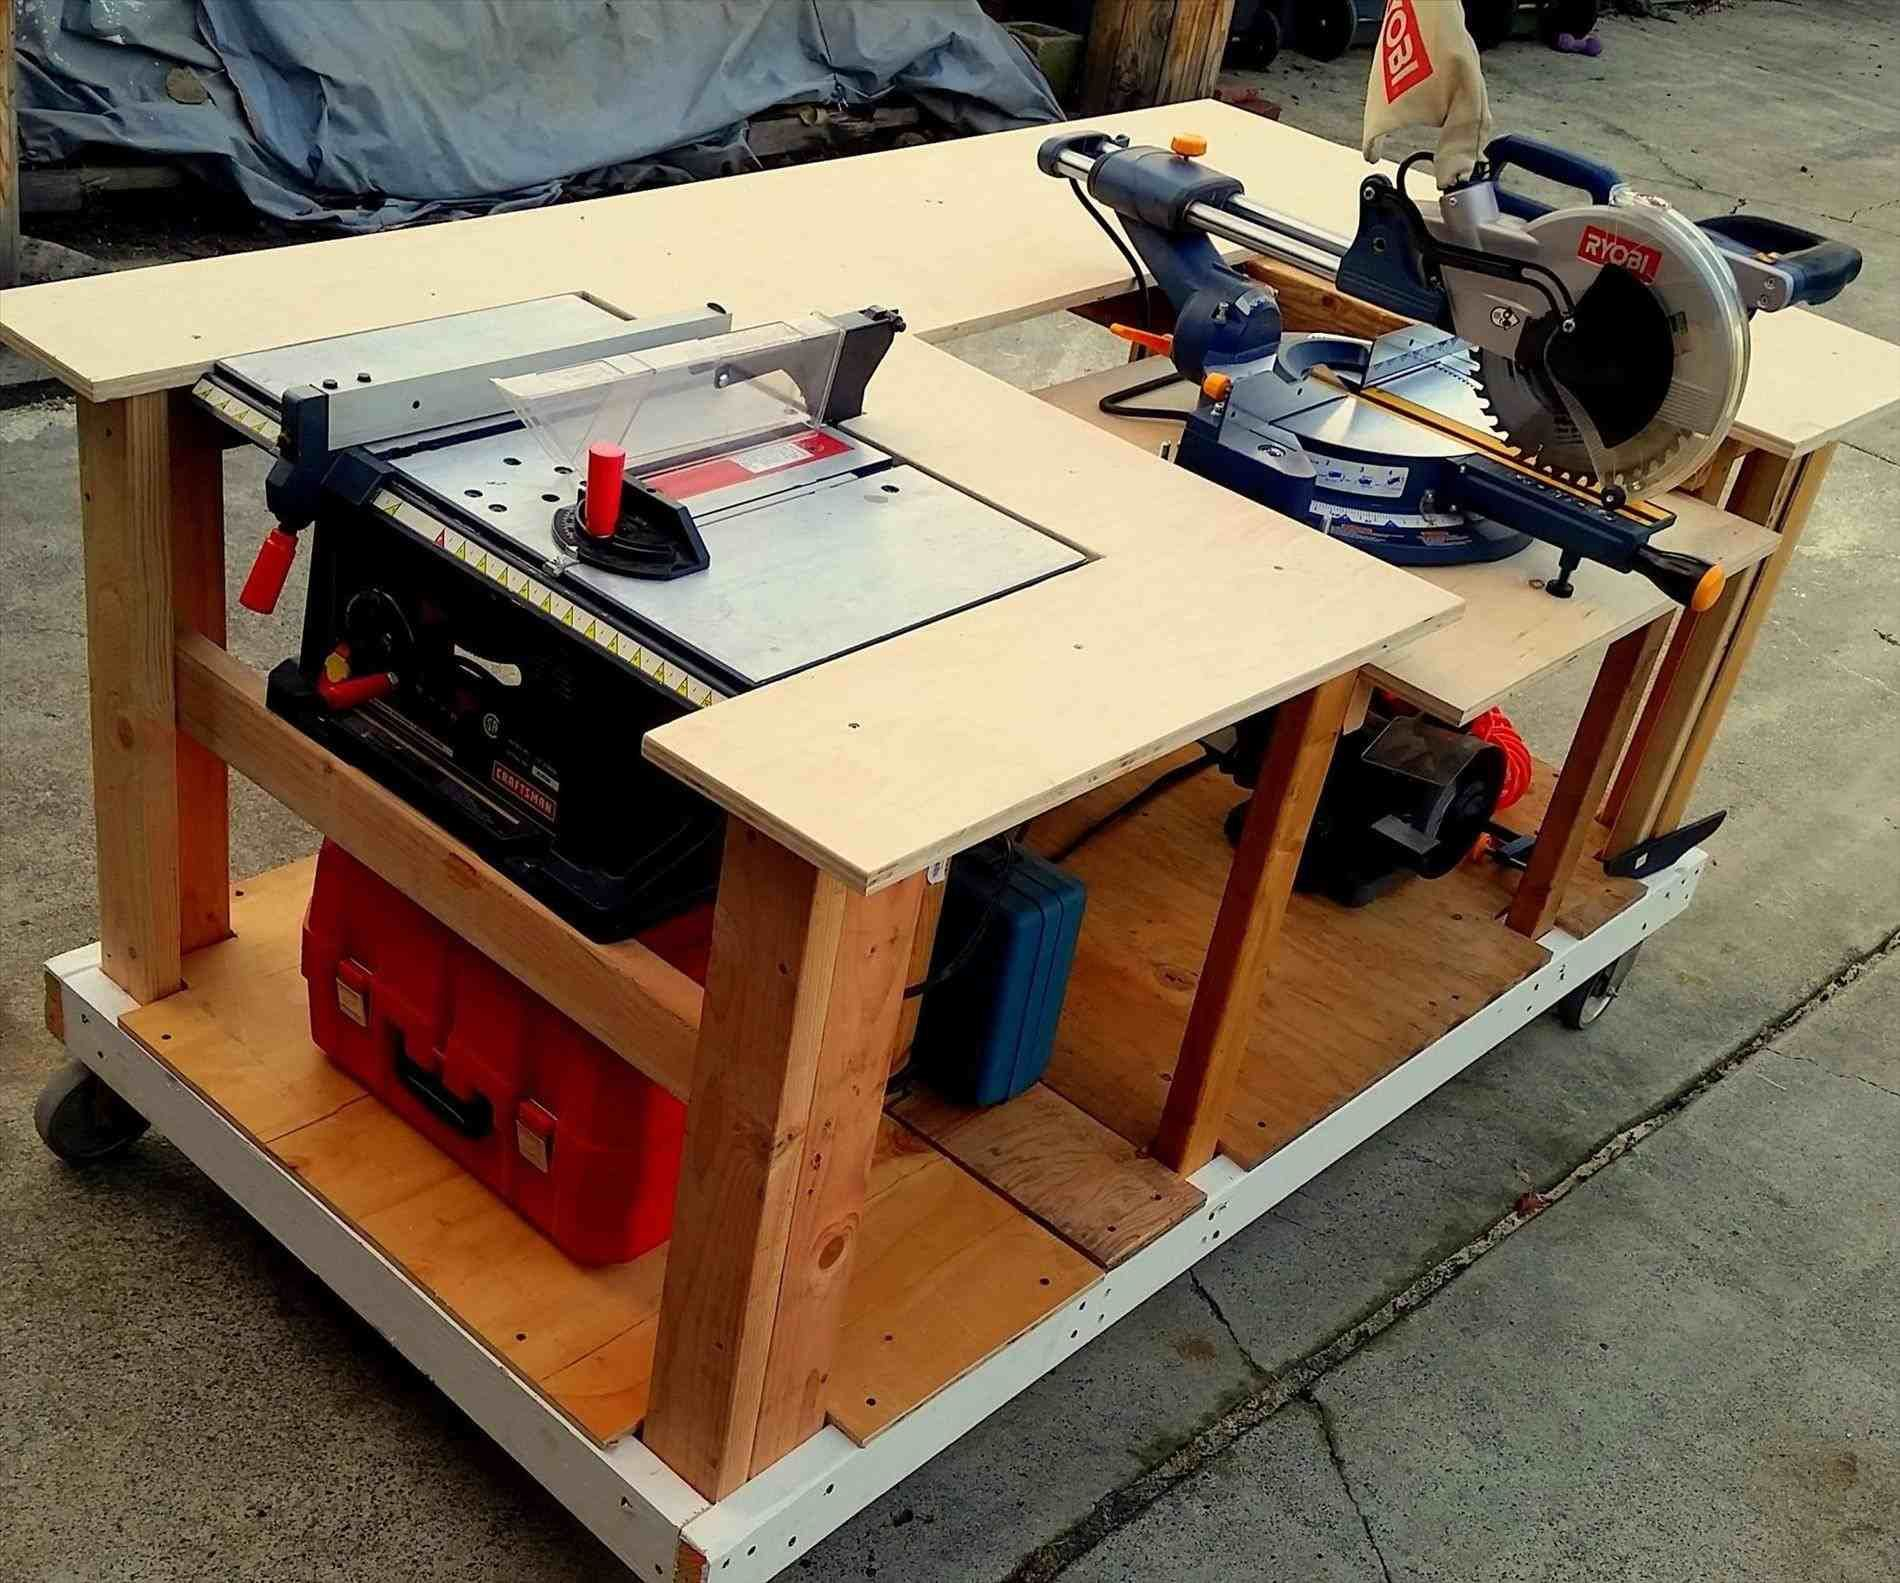 Wow I Need To Get Some Plans Just What We Need To Find Something To Do Http Teds Woodworking Di Renover Meuble Bois Etabli Bricolage Projets De Menuiserie